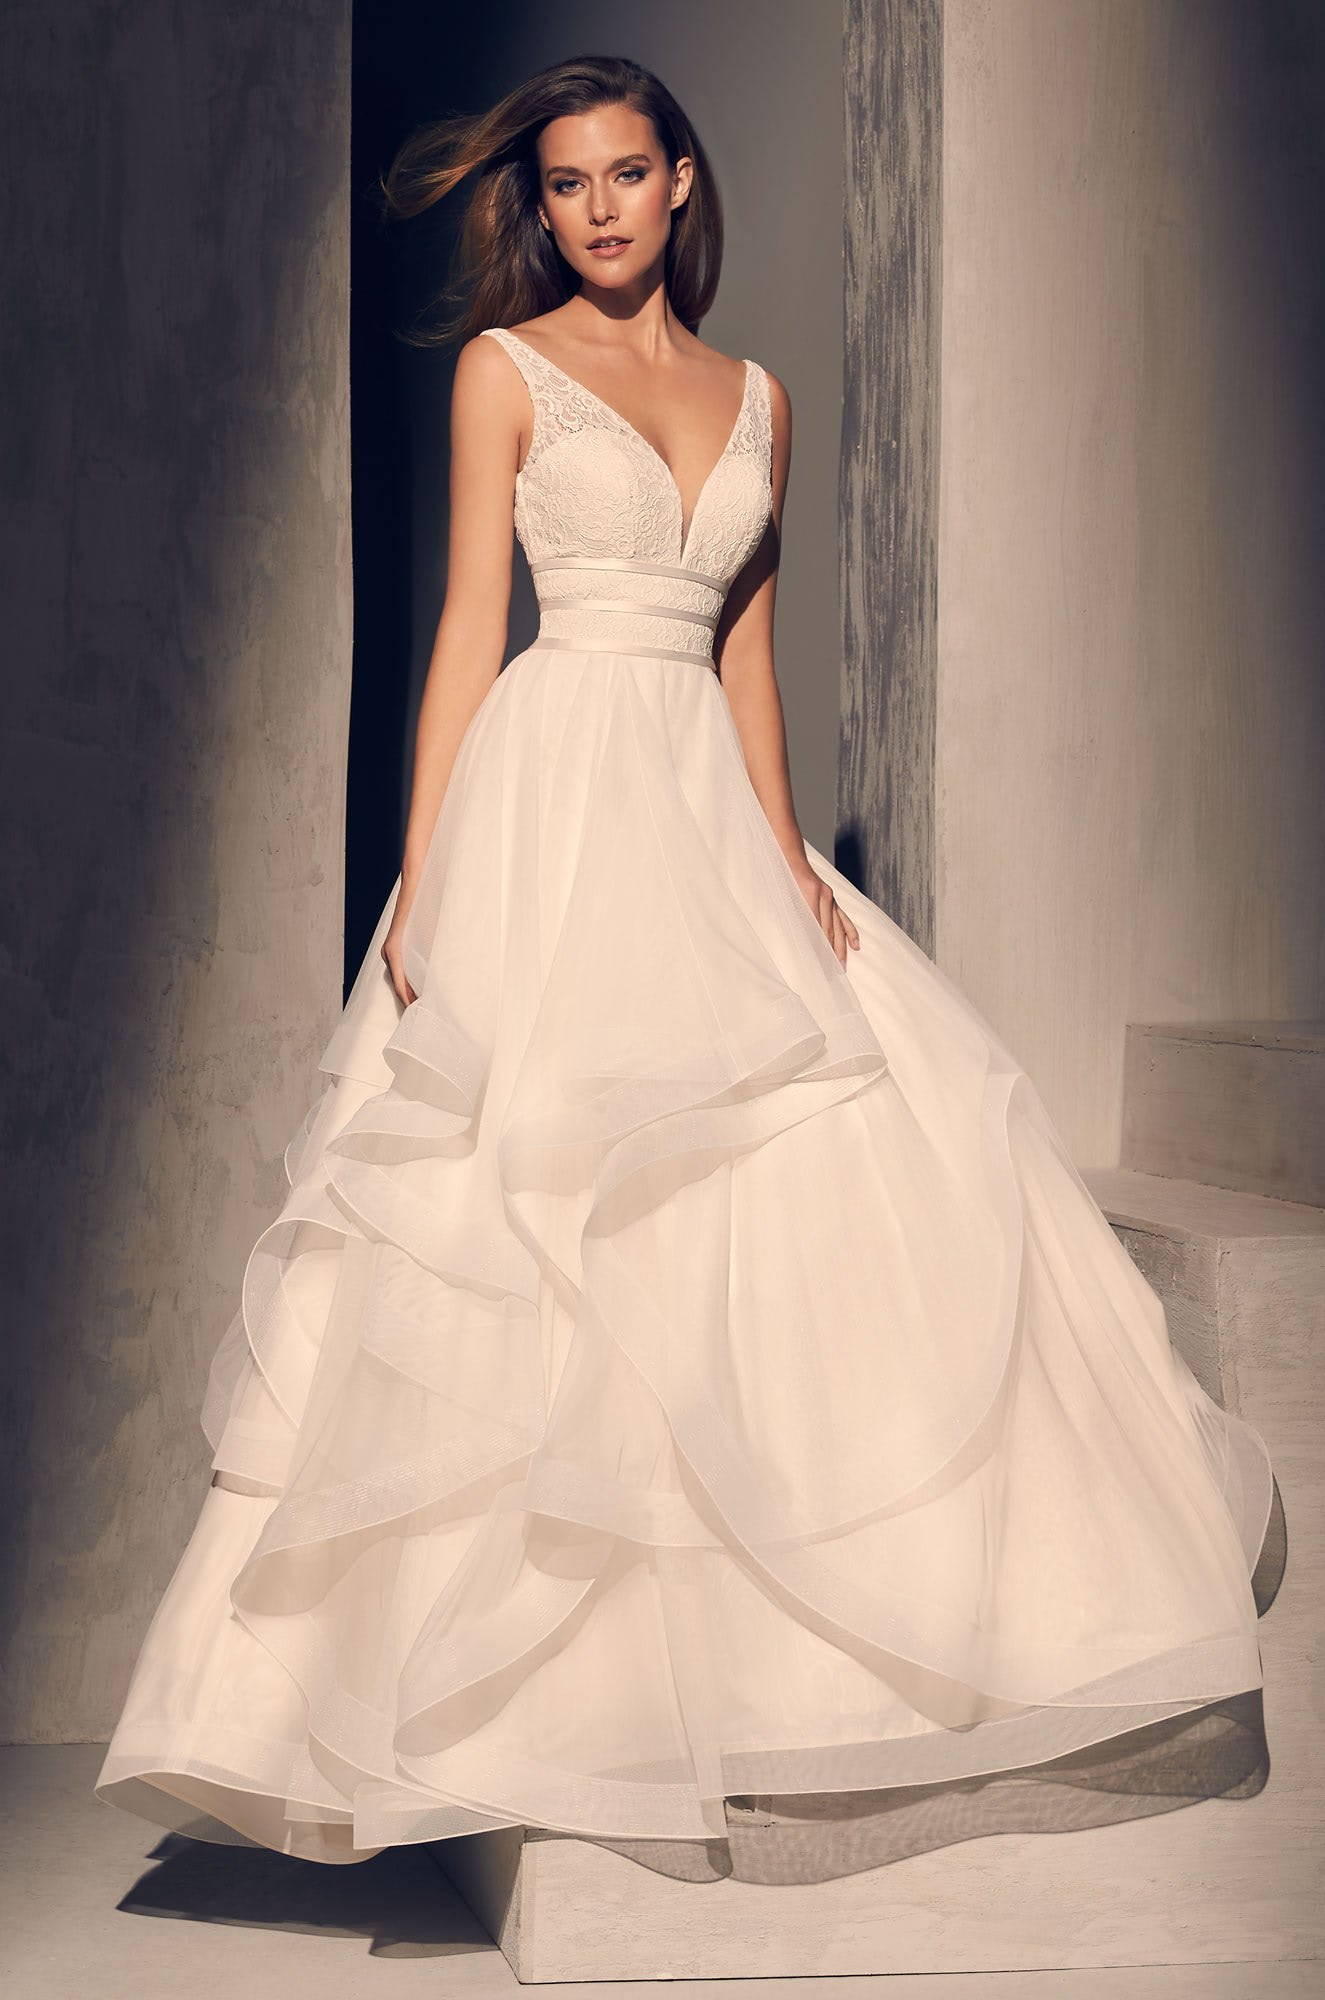 Mikaella – Size 12 Ball Gown dress | Second hand wedding dresses Magherafelt - Size 12